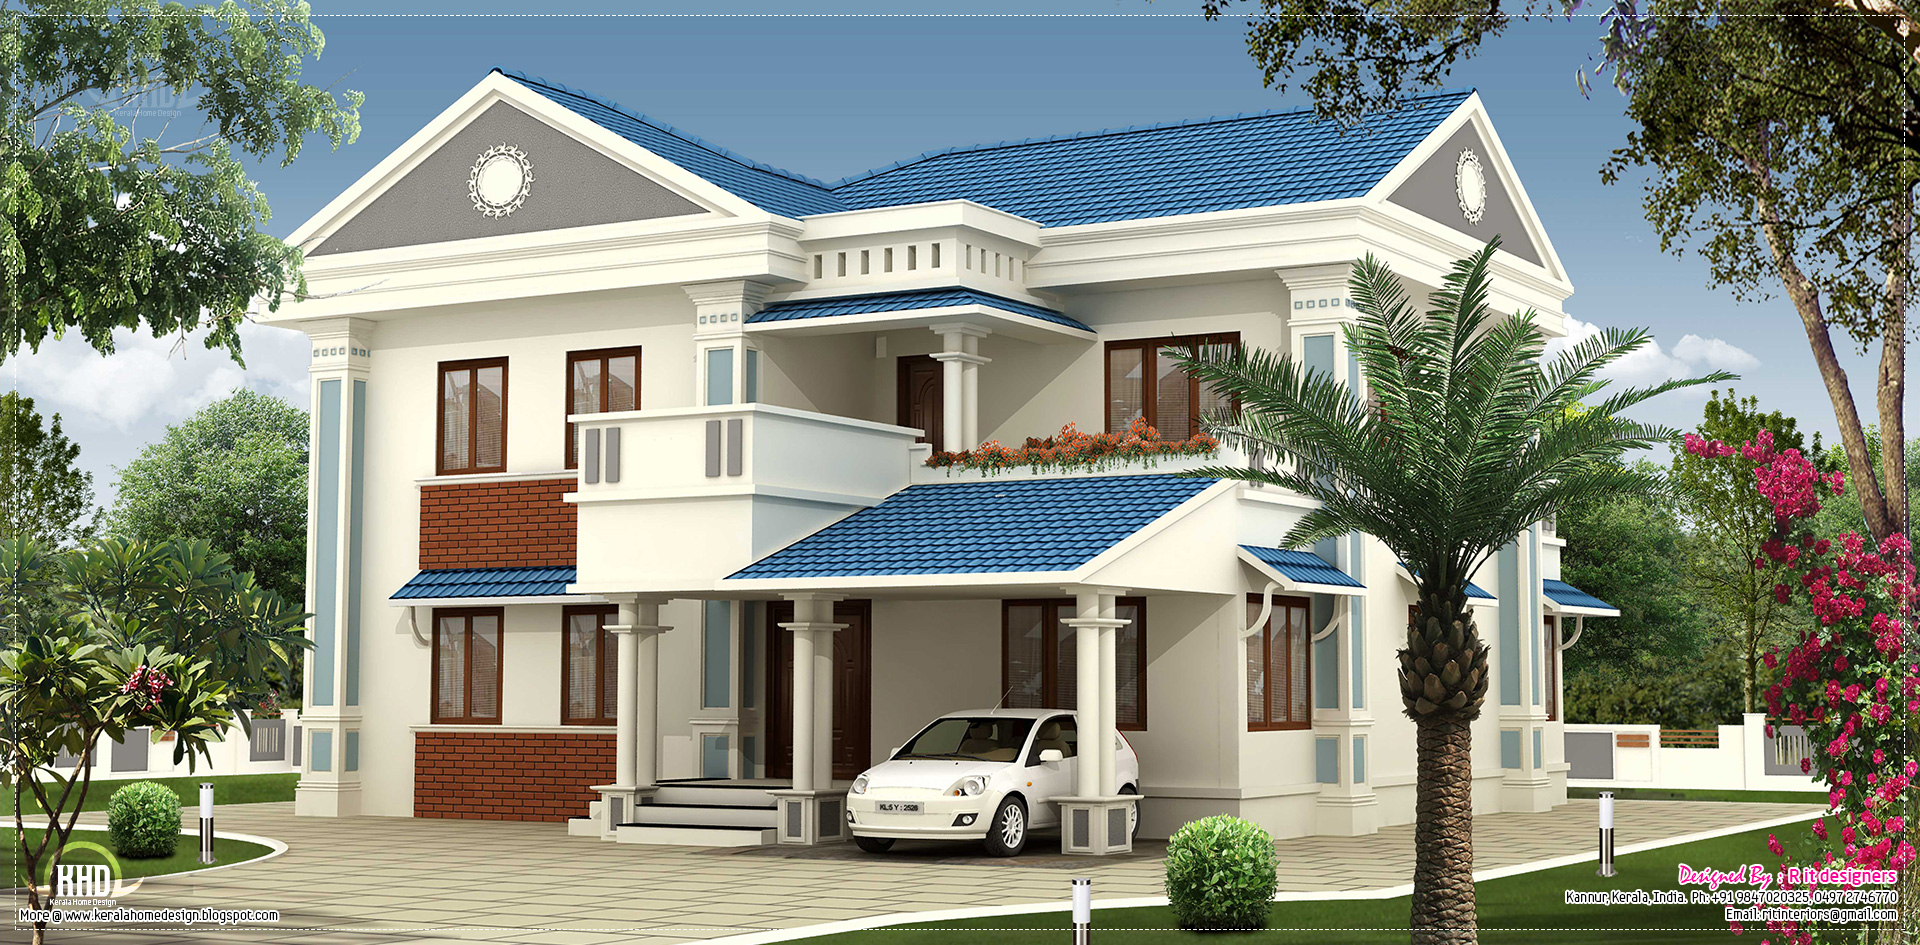 2000 beautiful villa elevation design kerala for Beautiful villa design